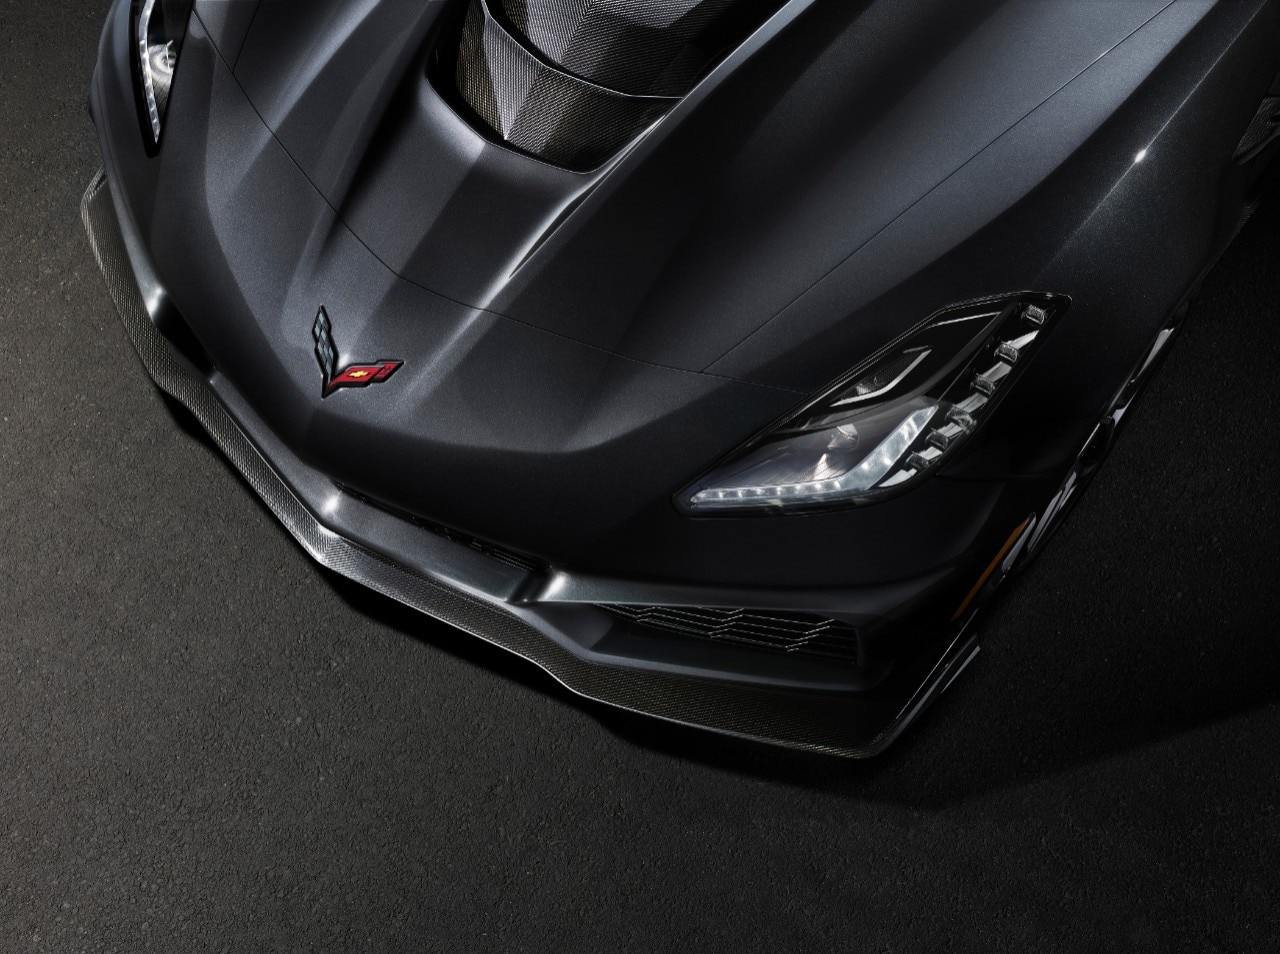 2019 Corvette ZR1 - The fastest, most powerful production